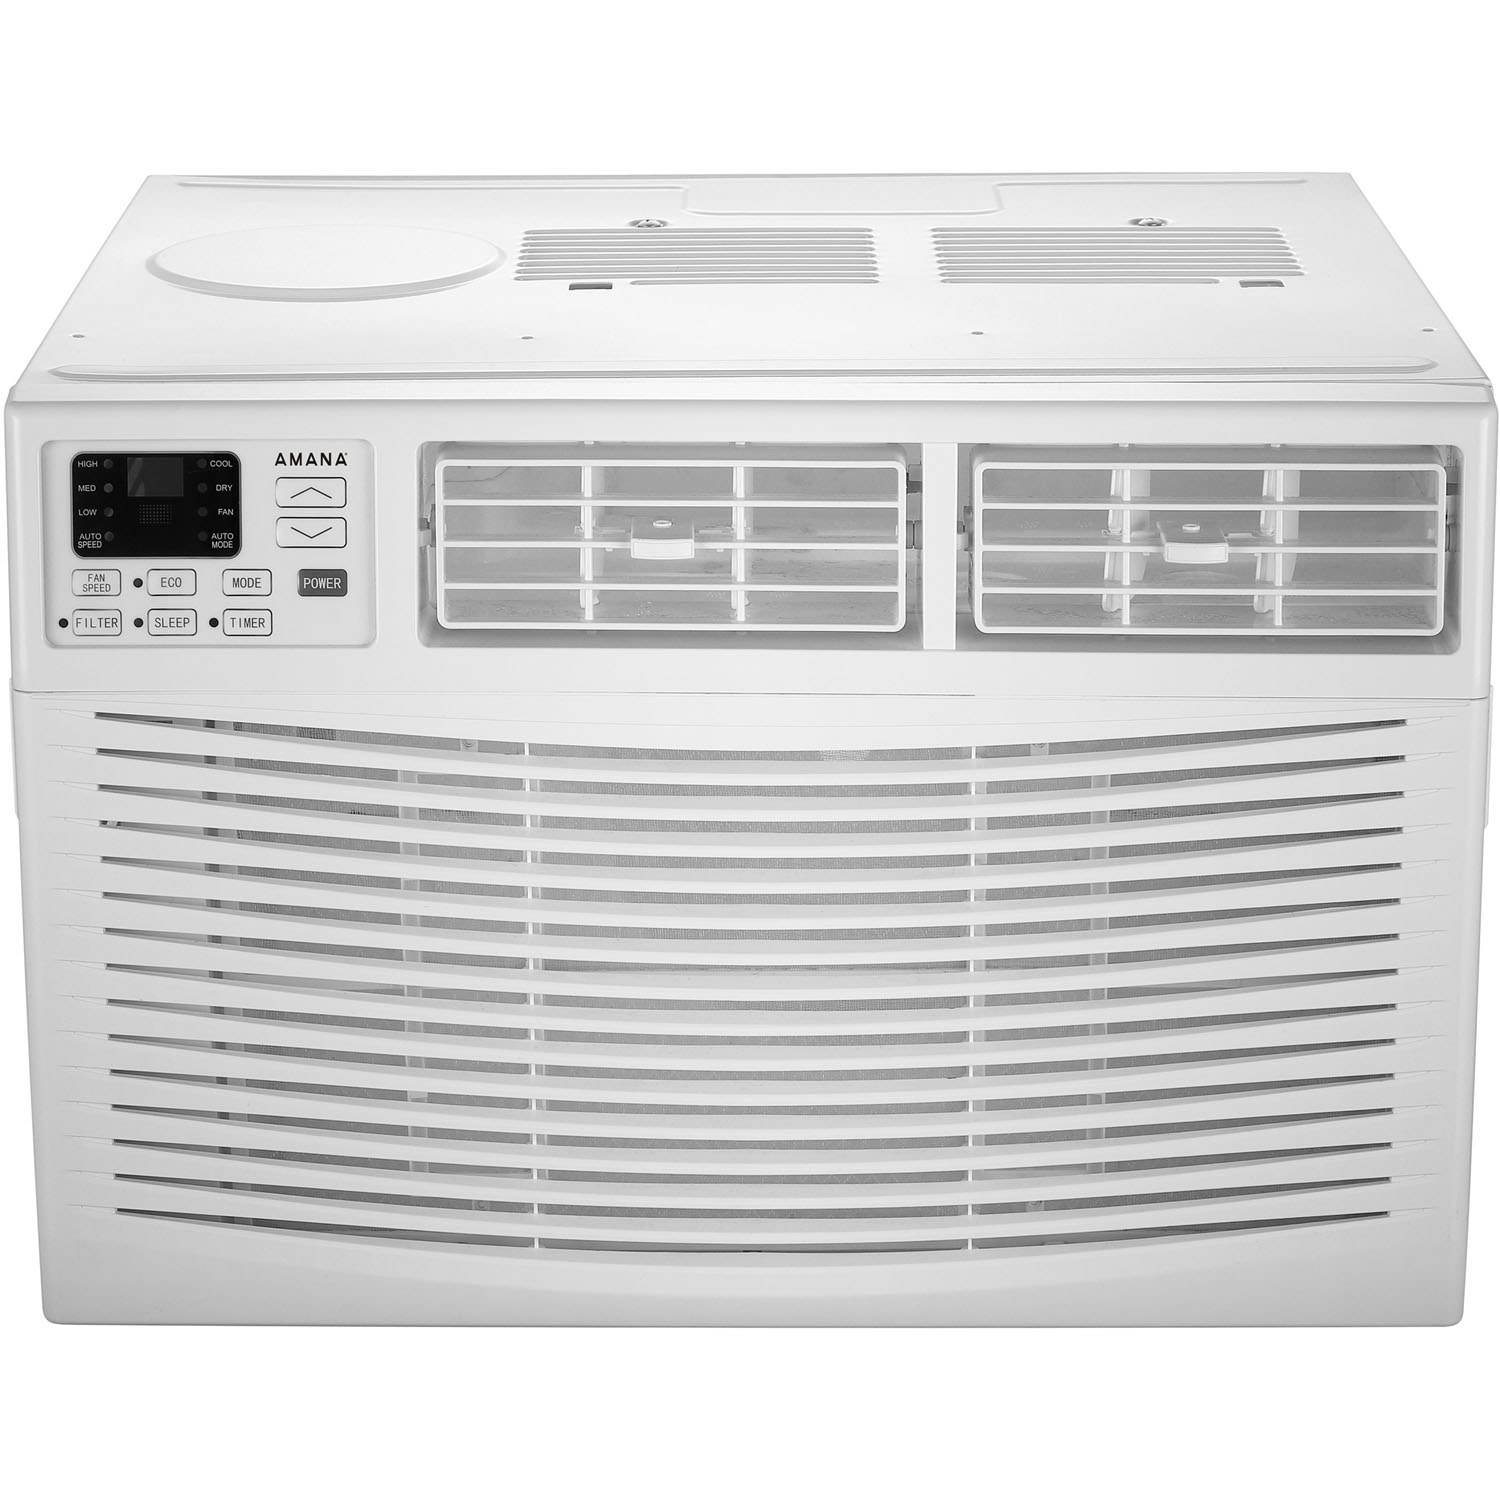 Amana AMAP222BW 22,000 BTU 230V Window-Mounted Air Conditioner with Remote Control